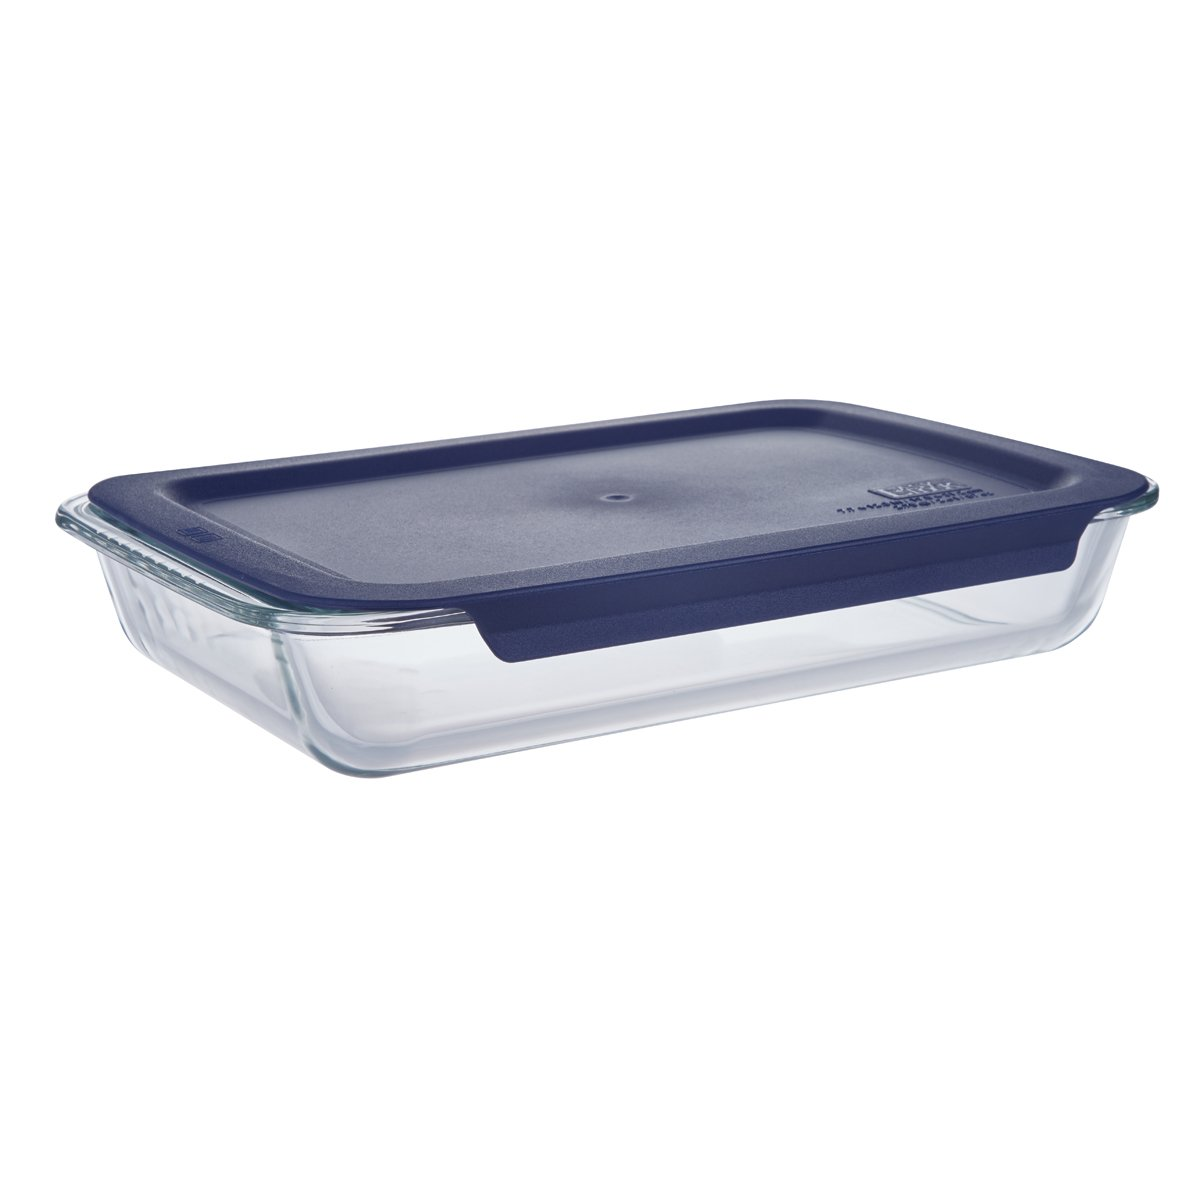 LEXINGWARE Basics 2.36 Quart Glass Oblong Baking Dish Blue Plastic Lid - 8.8 inch x 13.8 inch by LEXINGWARE